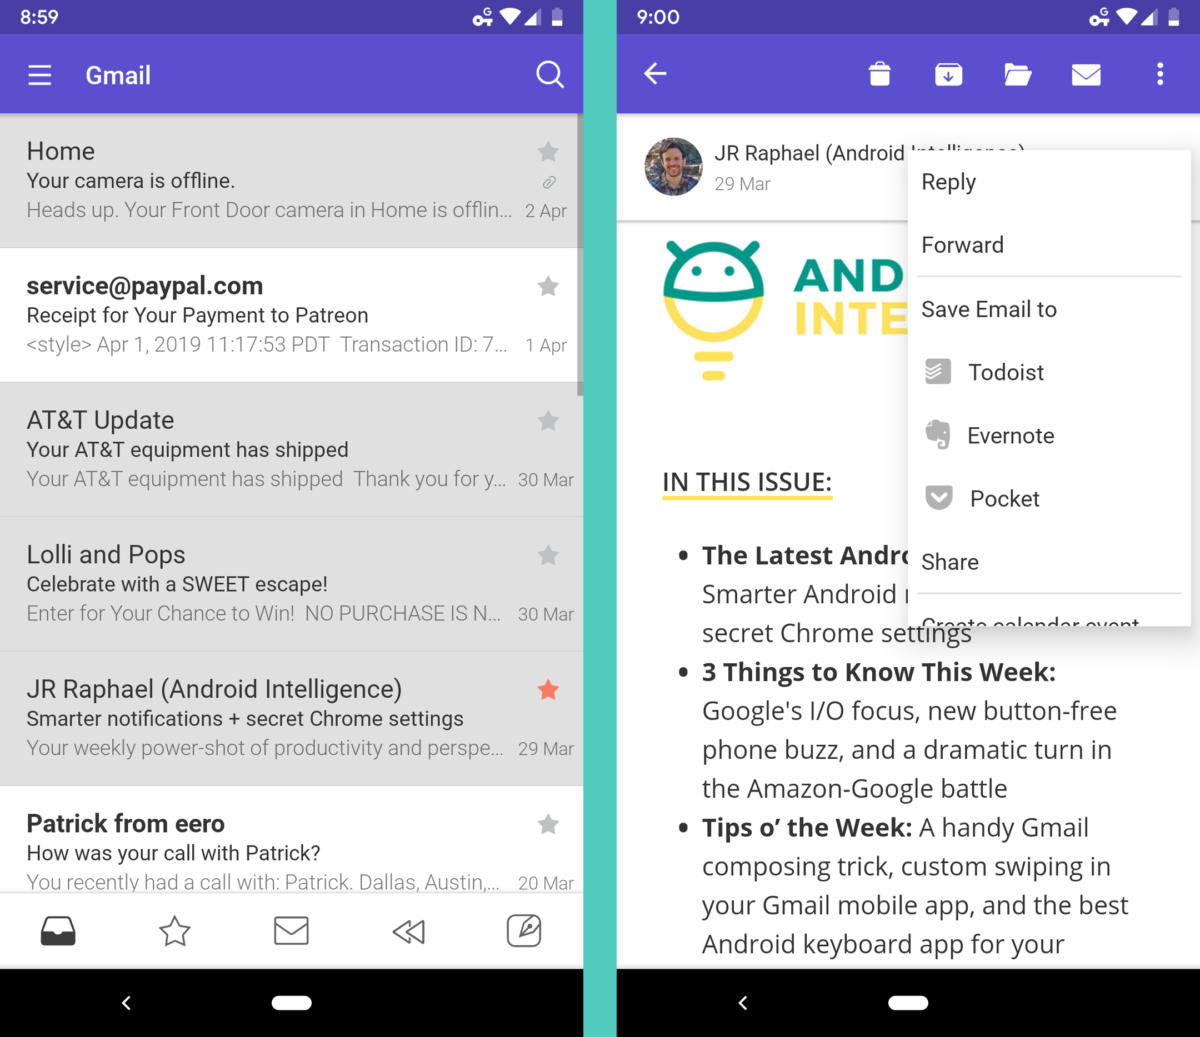 Gmail Alternative Android Email Apps - Newton